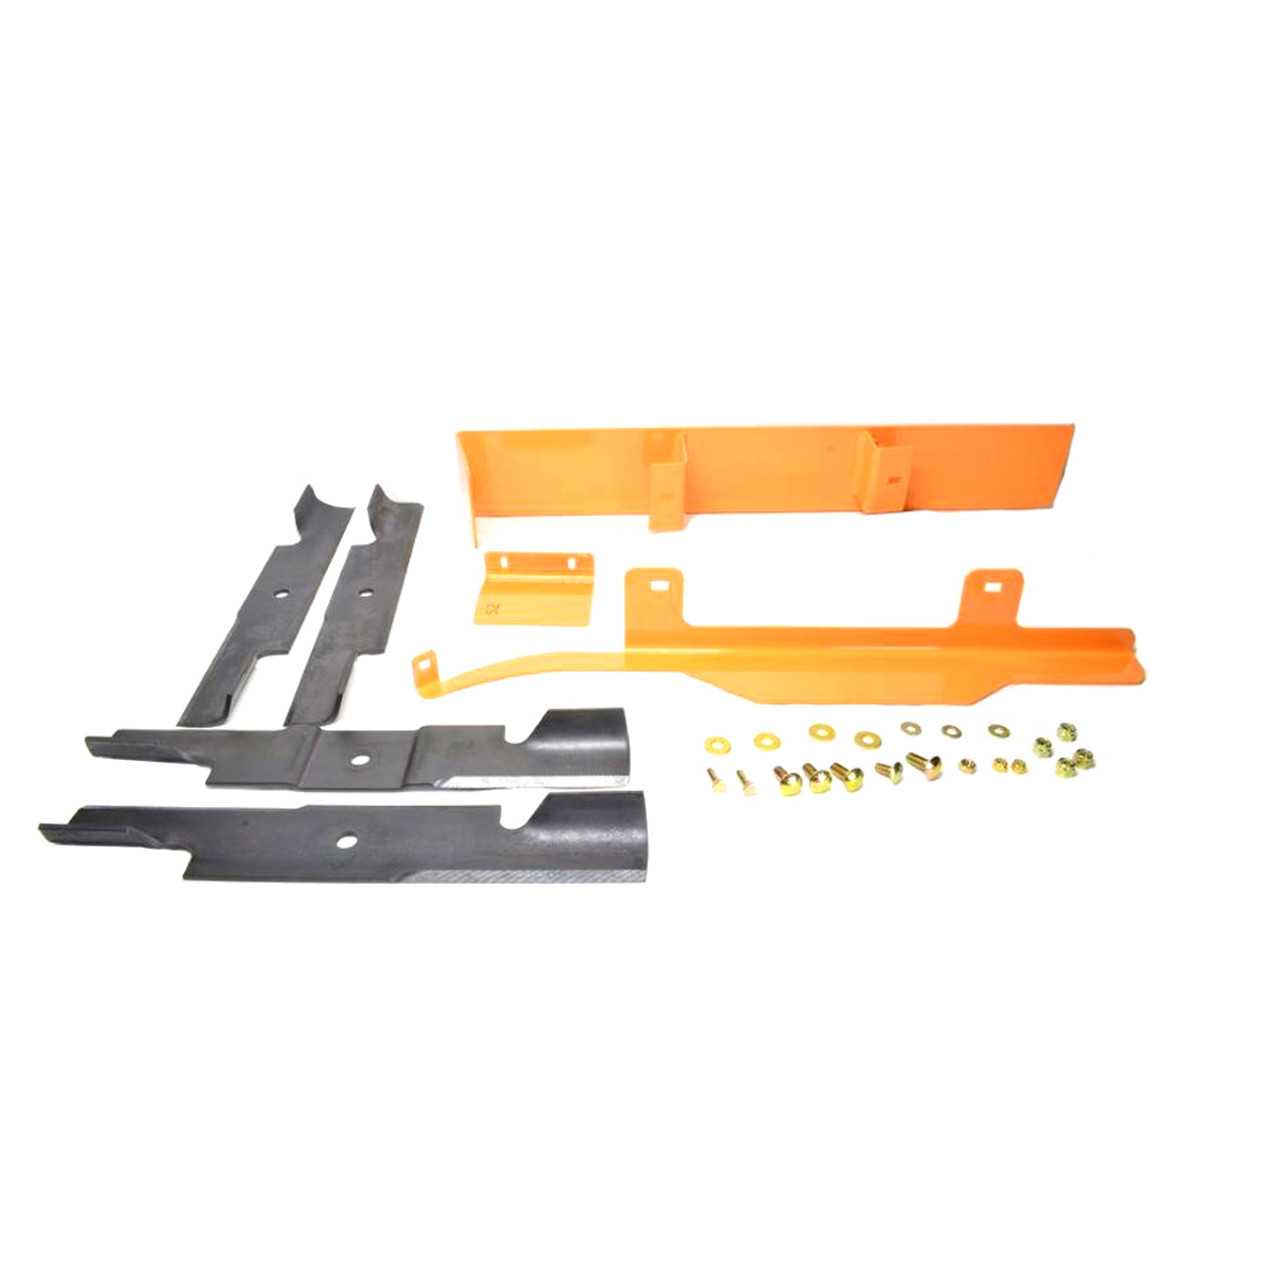 "Scag 9070 Install Kit for 52"" Freedom Z Models Image"